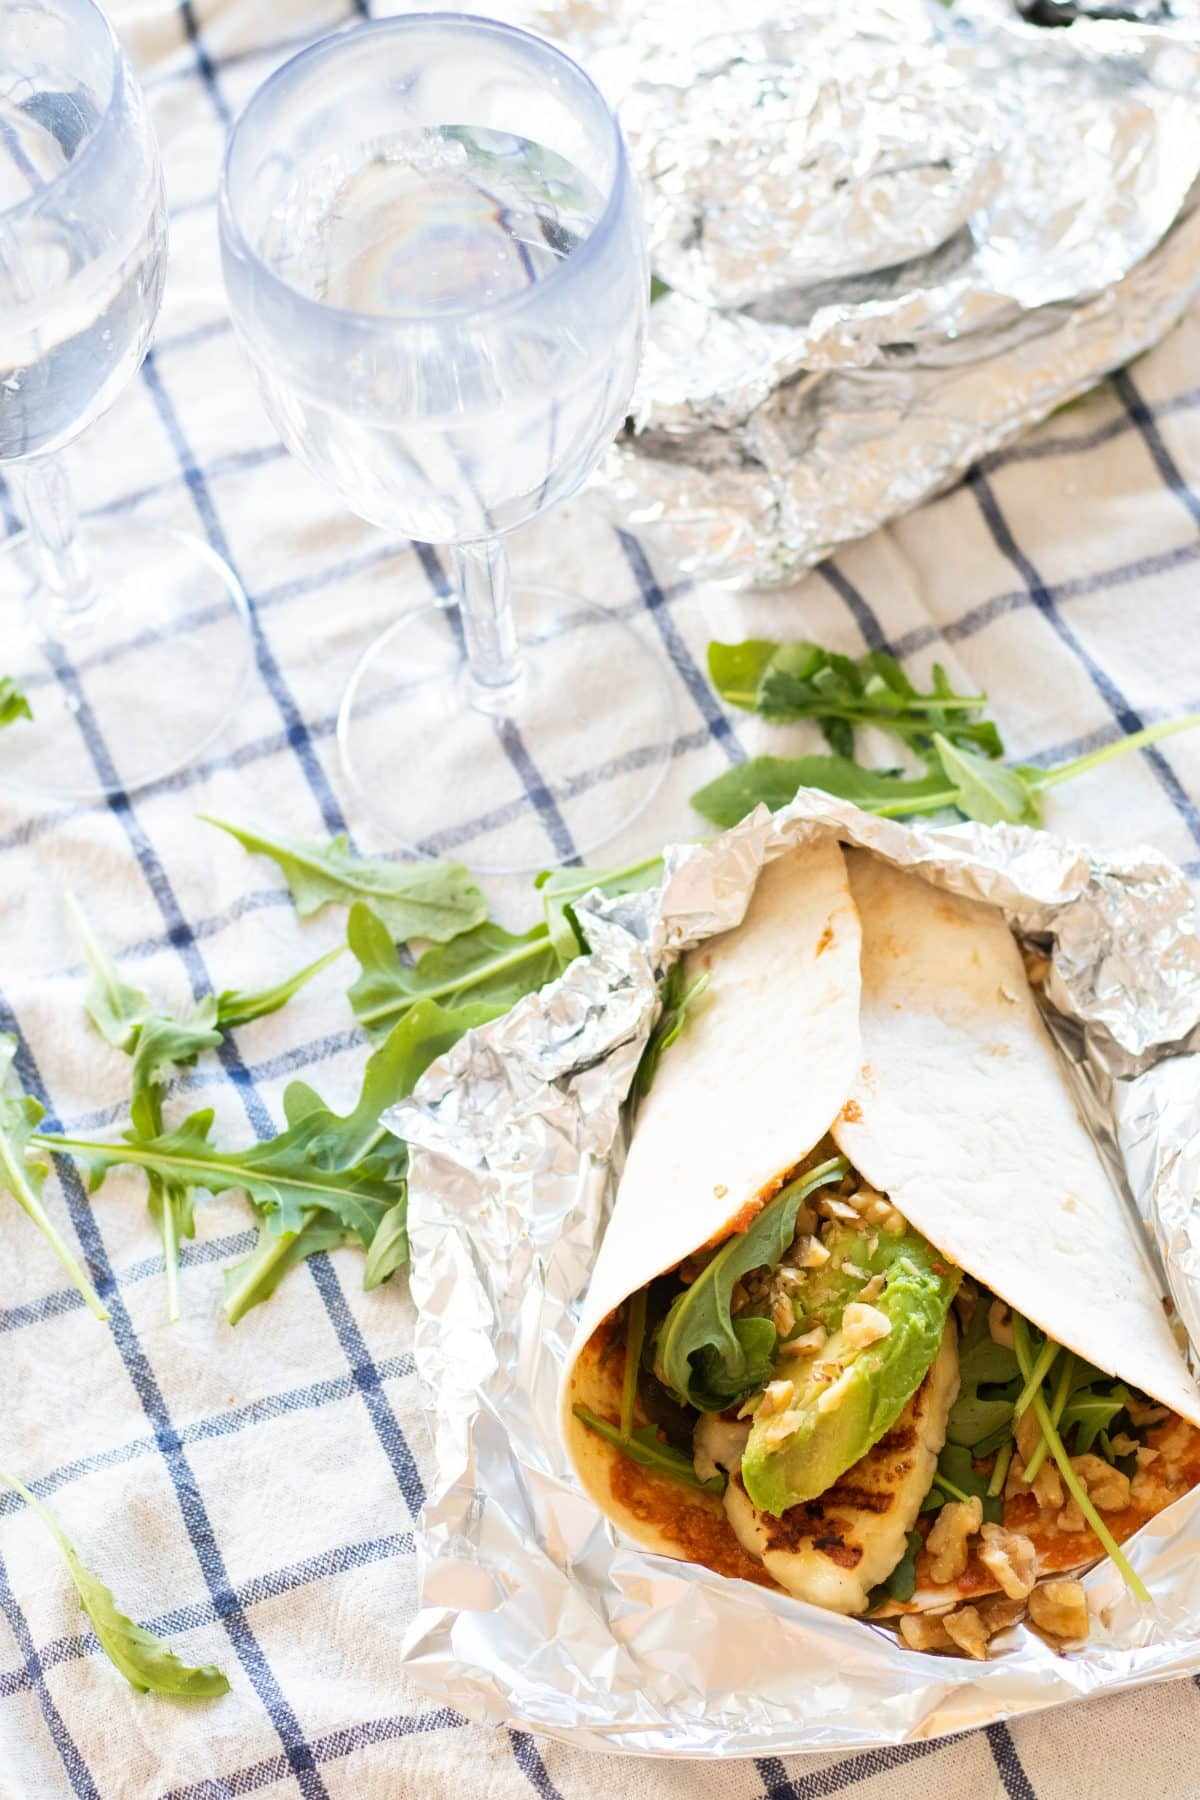 a halloumi wrap and two plastic wine glasses with water on top of a checkered picnic blanket